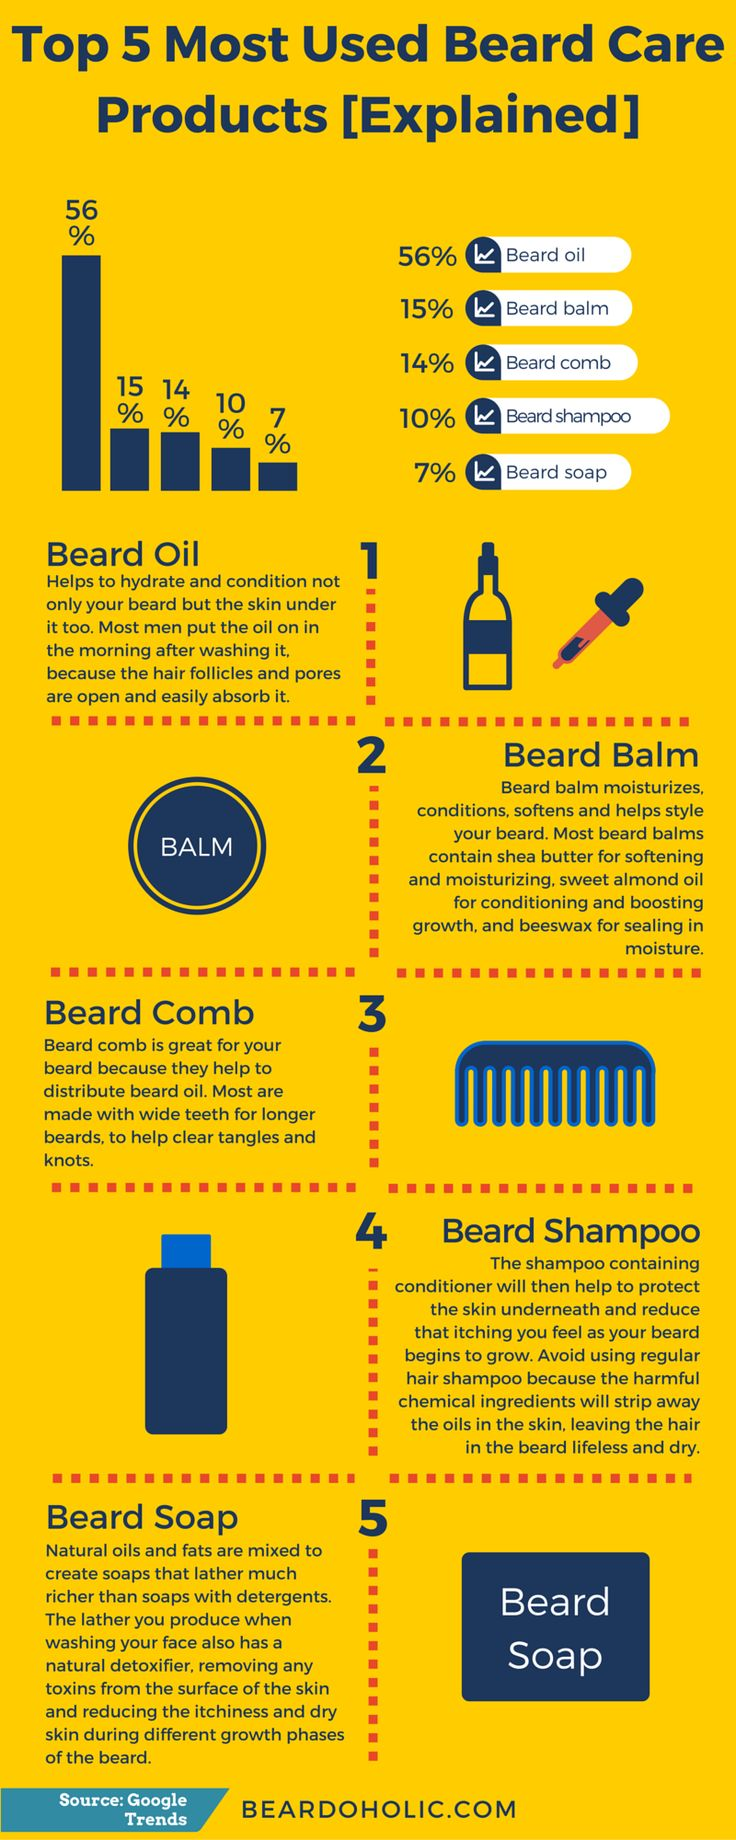 Top 5 Most Used Beard Care Products [Explained] + Infographic From Beardoholic.com